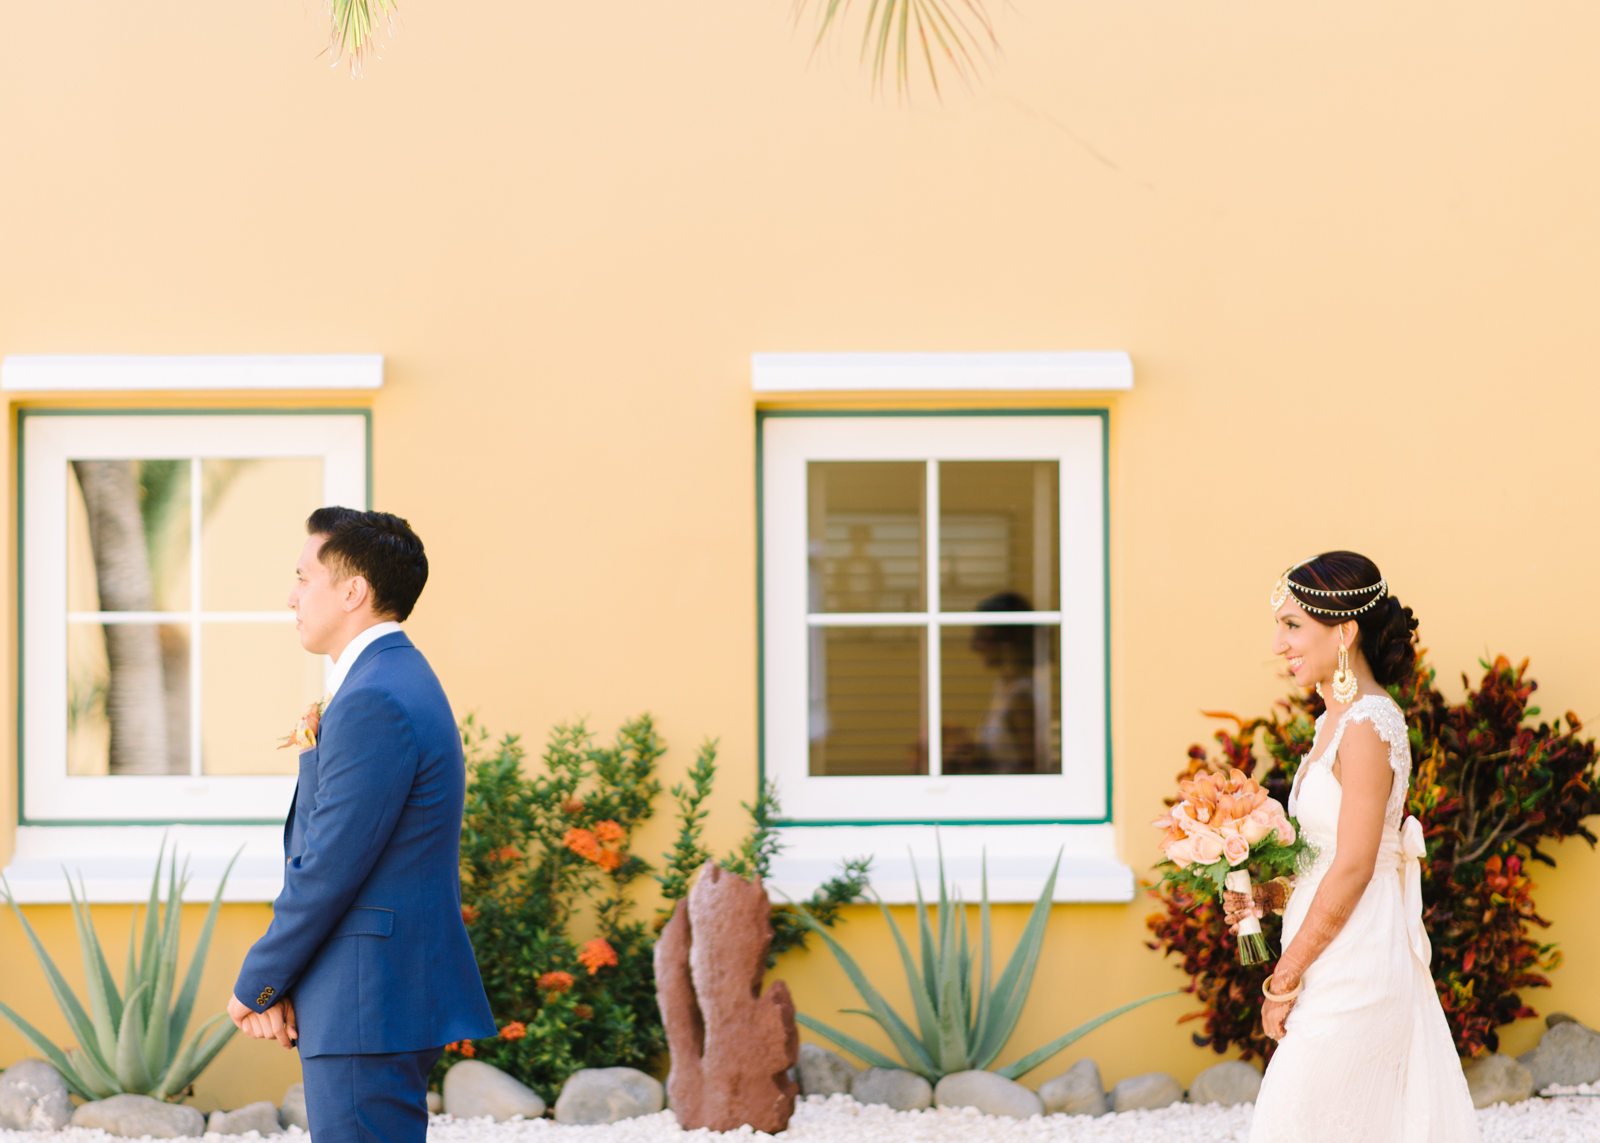 tara mcmullen photography amsterdam manor hotel wedding in aruba best wedding venue in aruba destination wedding photographer aruba indian wedding in aruba-006